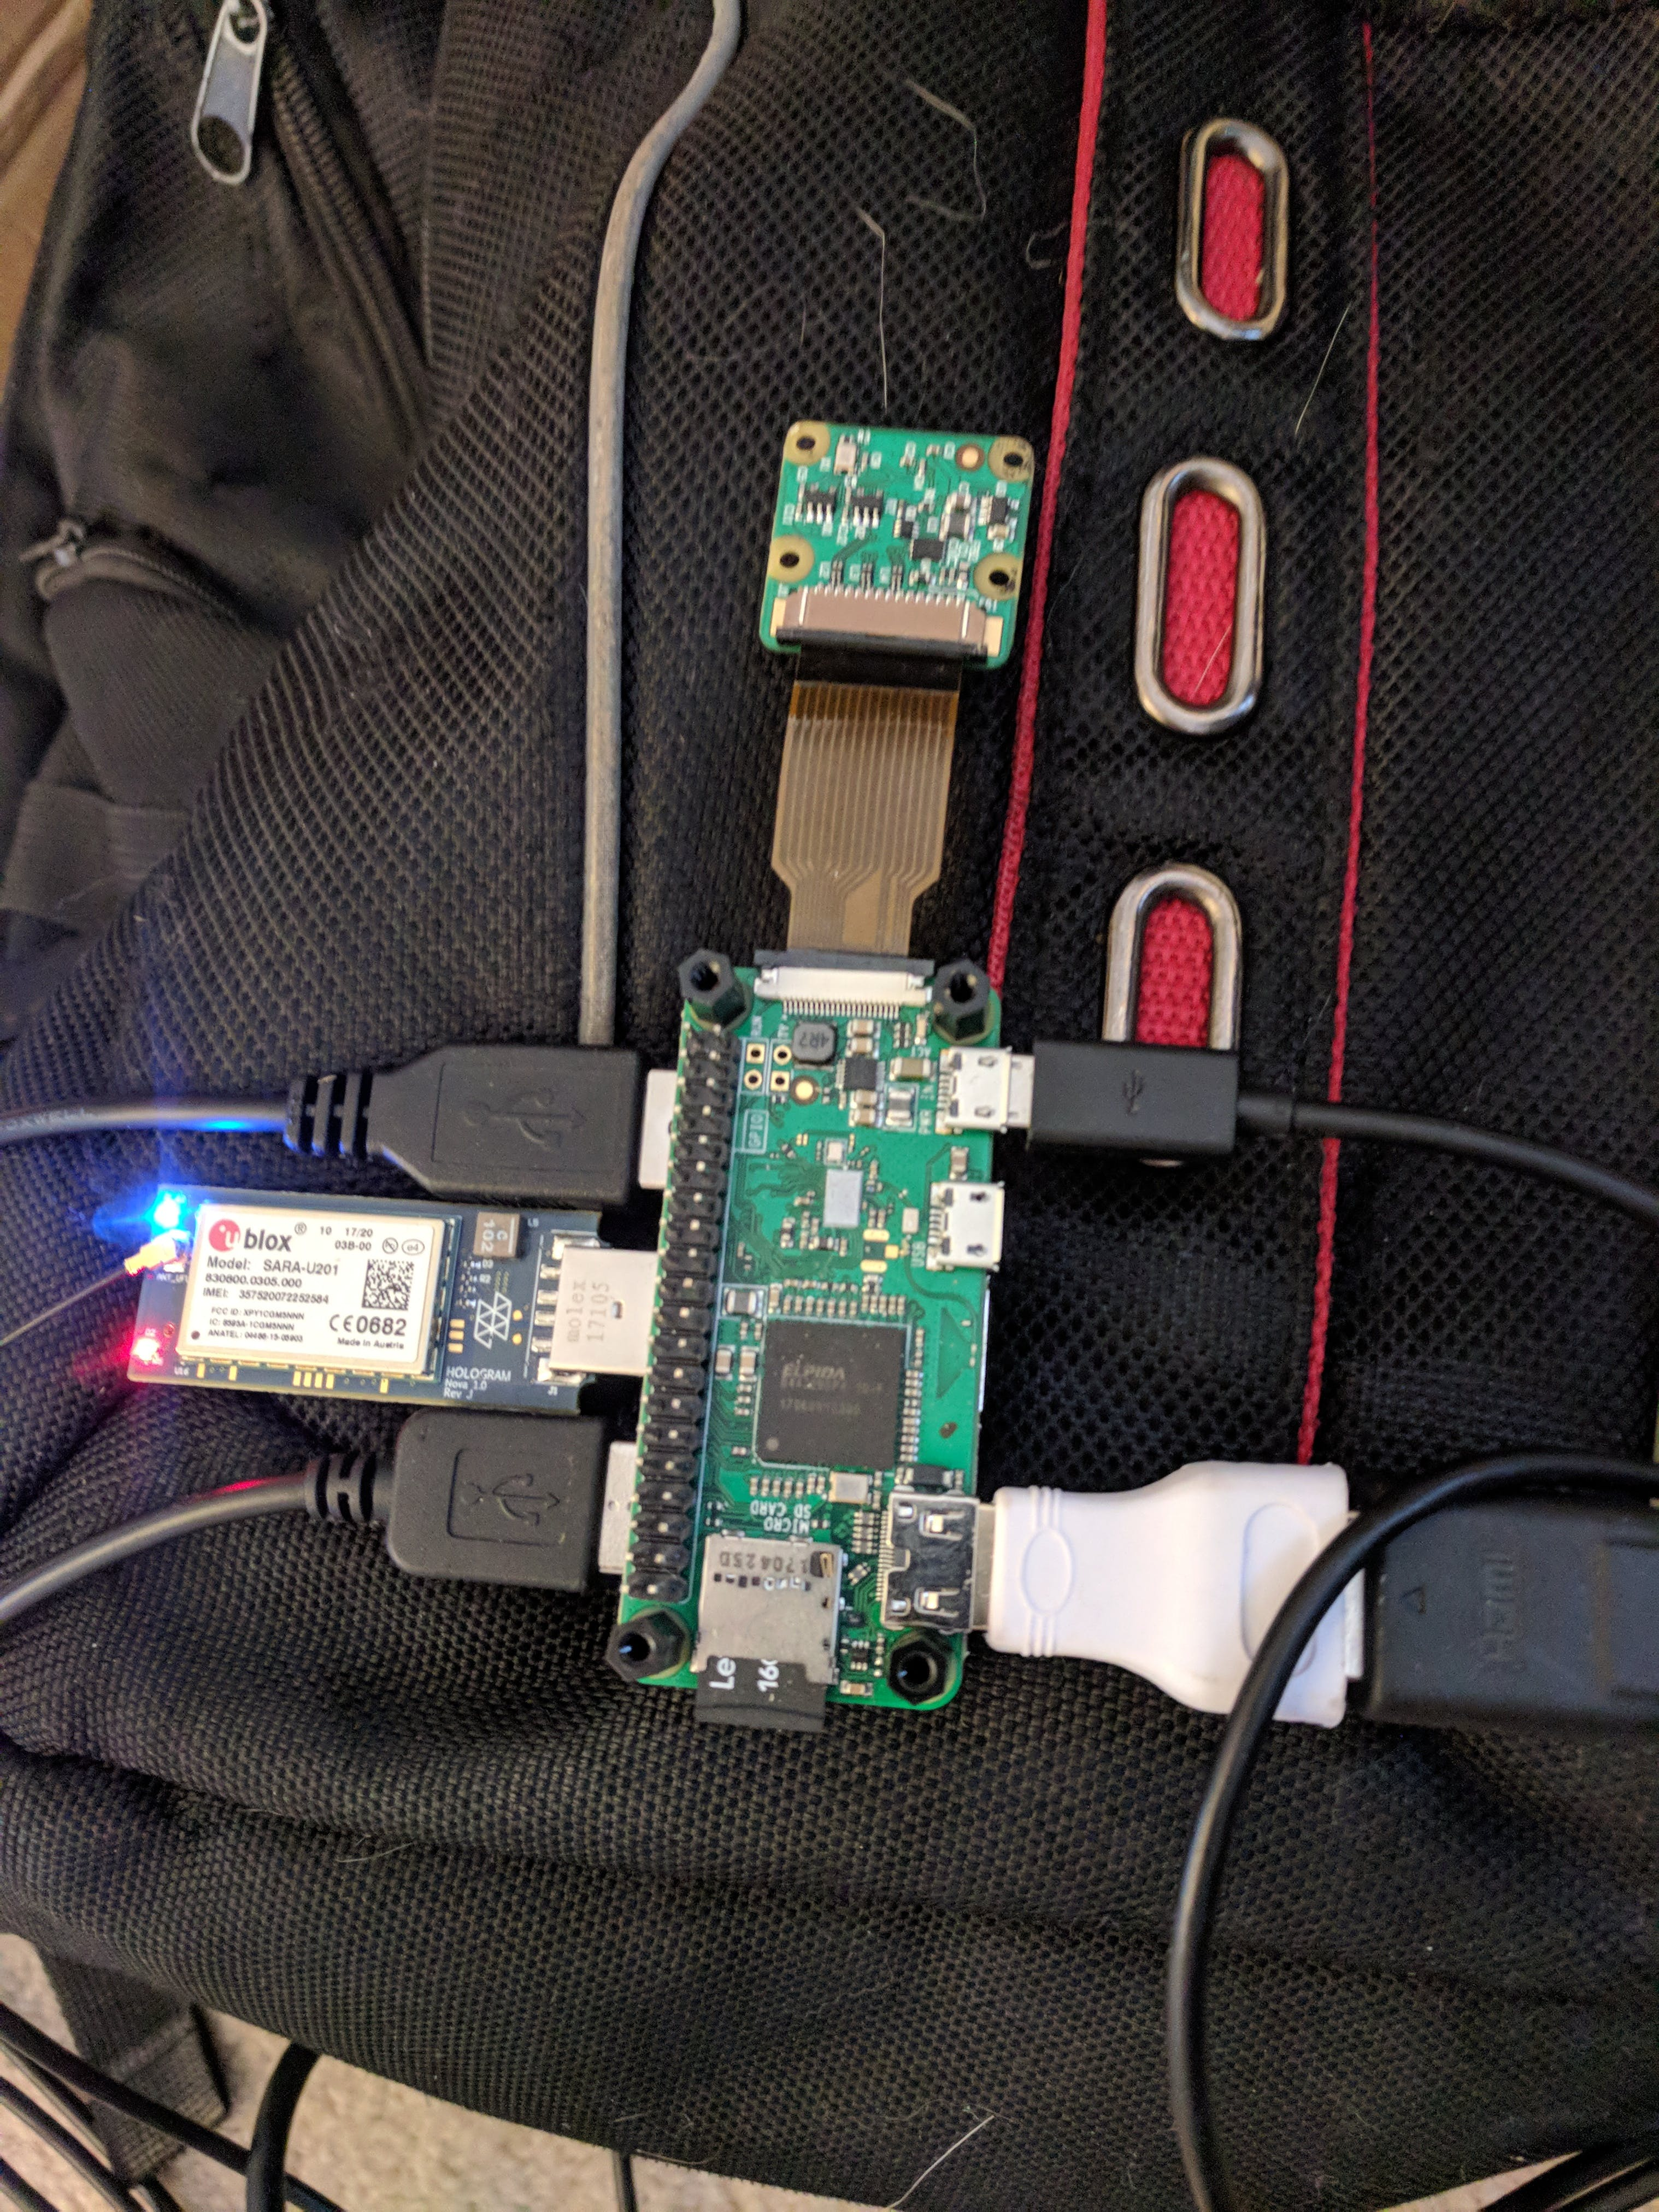 Raspberry Pi Zero W setup with camera and Hologram Nova. Note that your camera ribbon may be reversed, as I have two facing separate directions